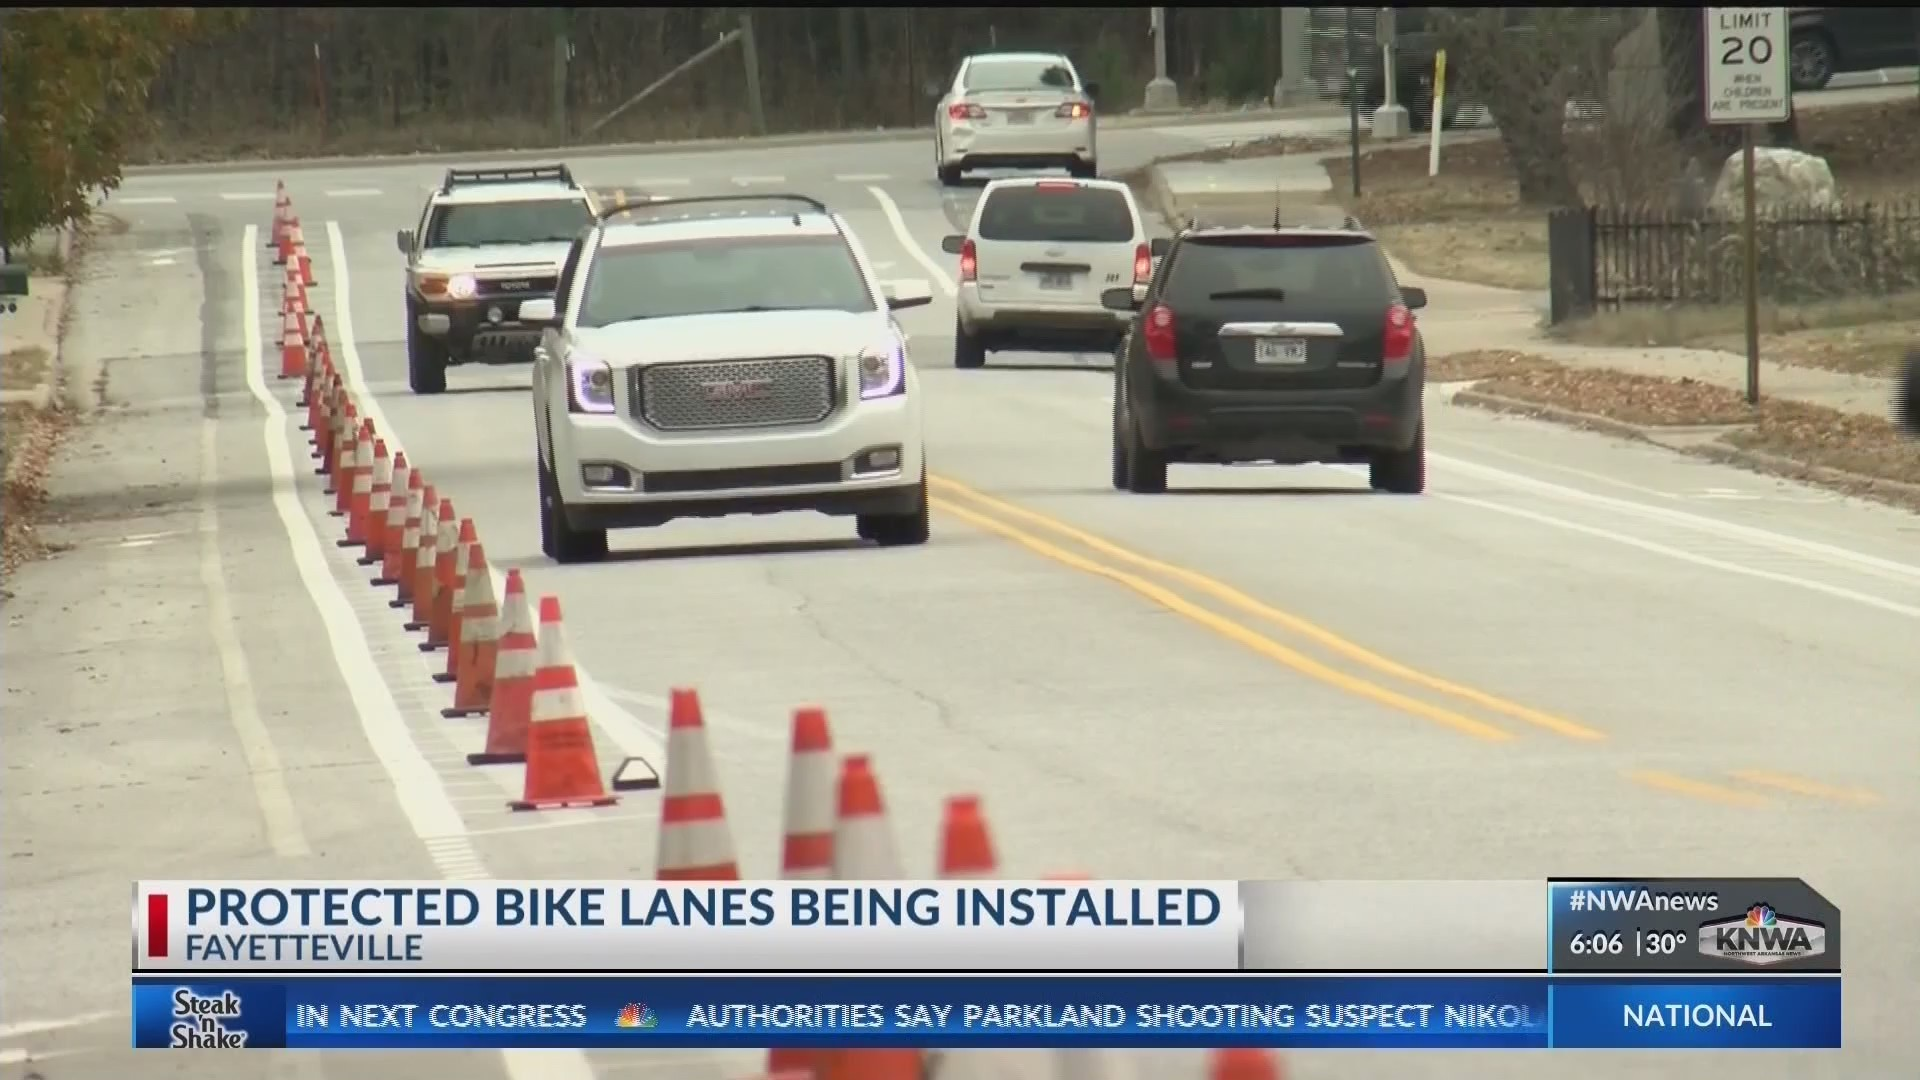 Fayetteville_to_Install_Protected_Bike_L_0_20181115031305